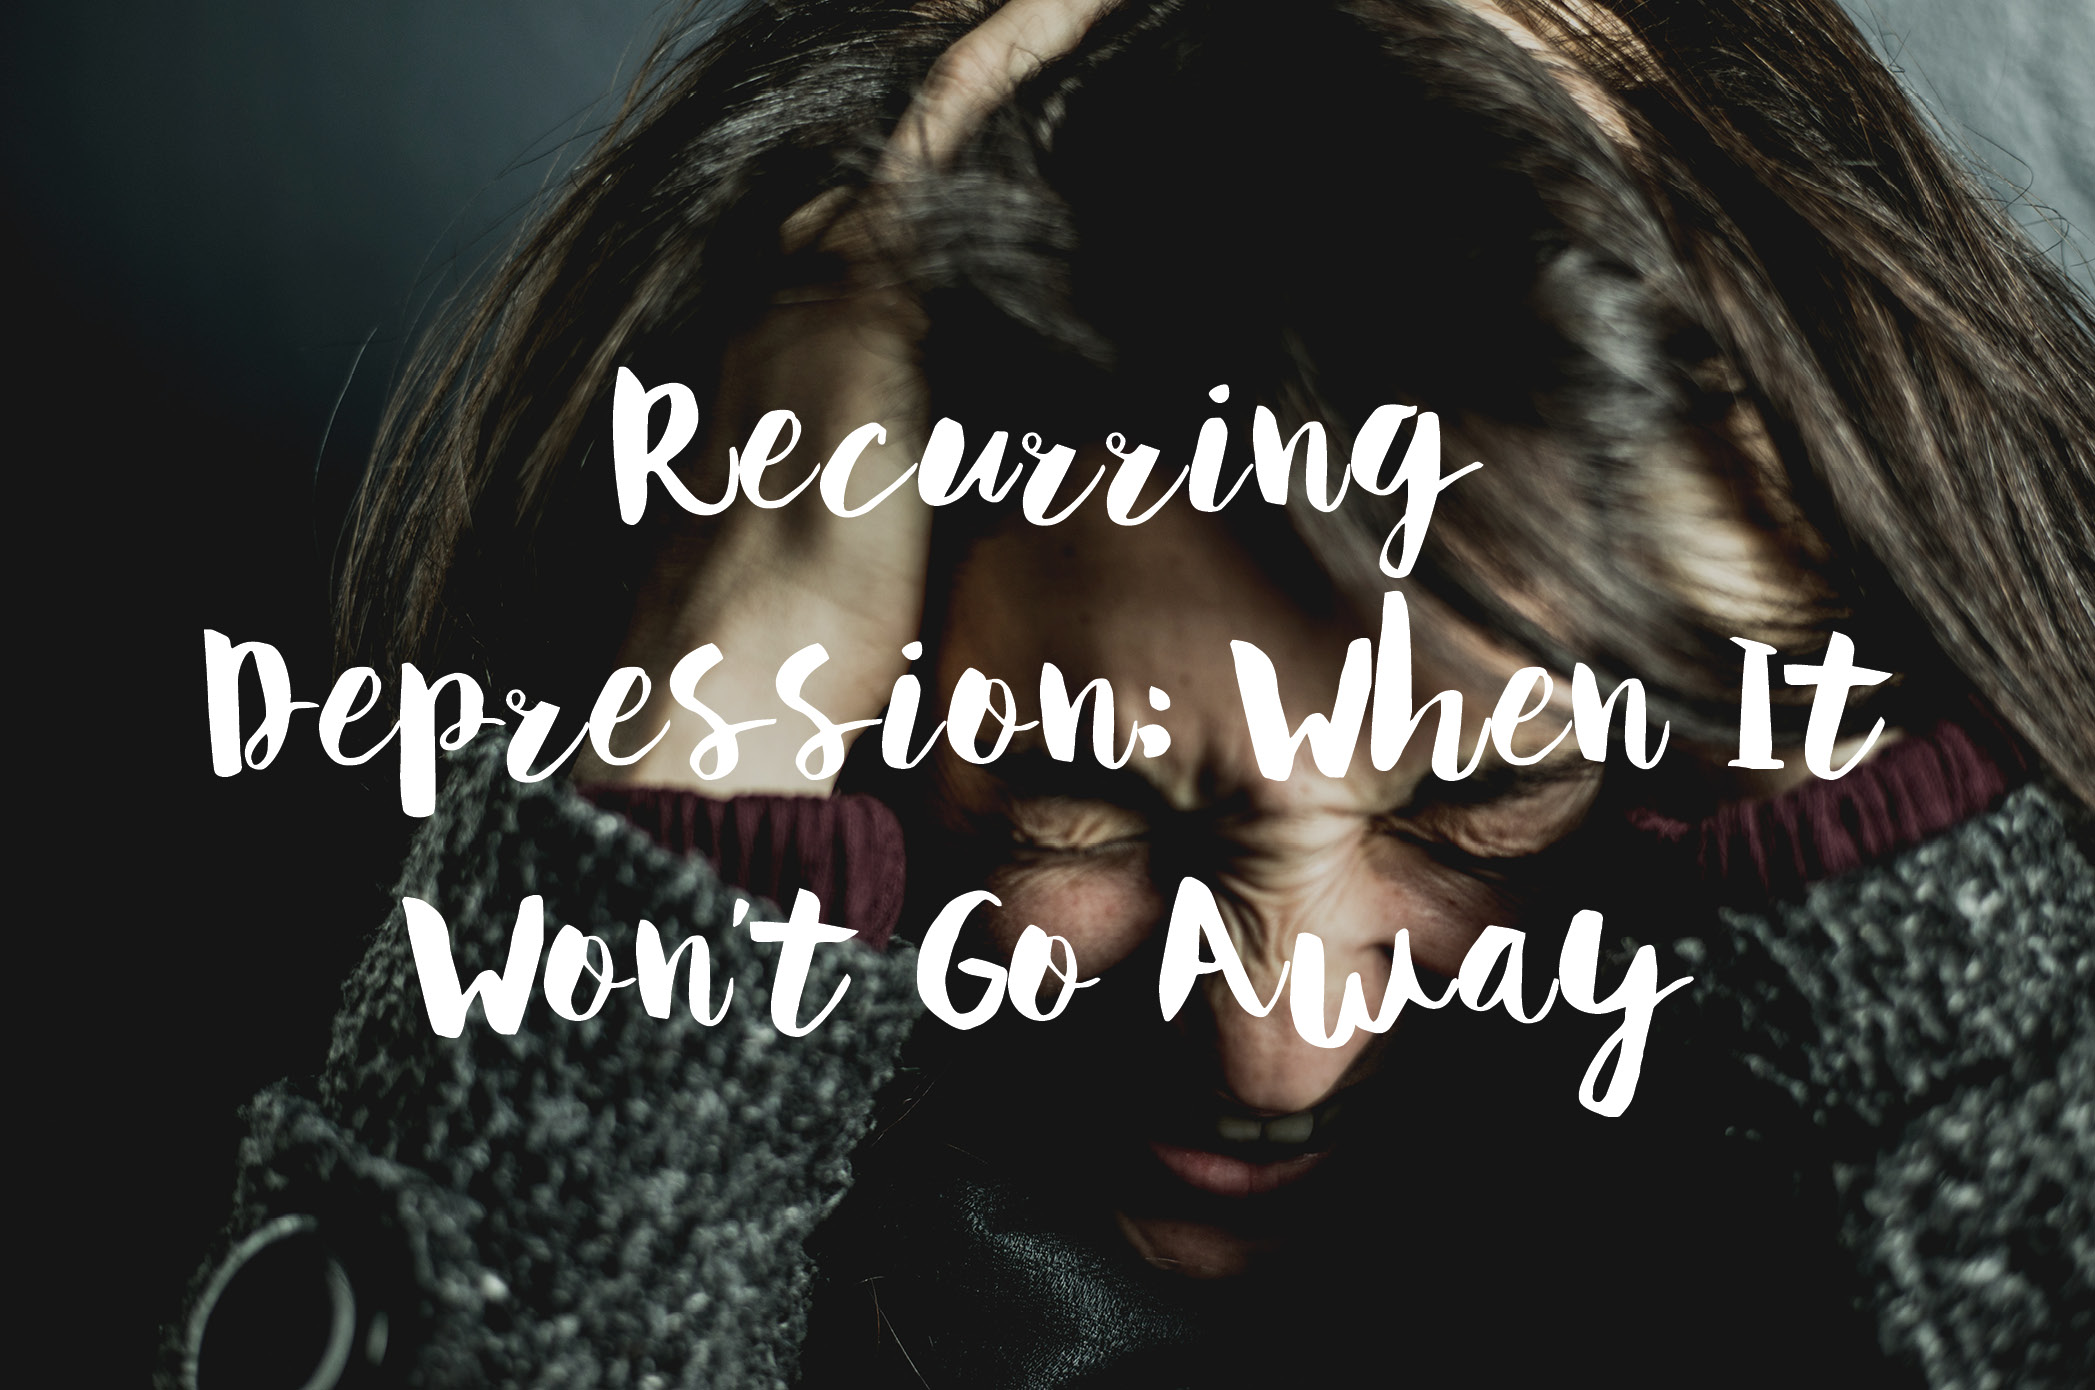 Recurring Depression: When It Won't Go Away